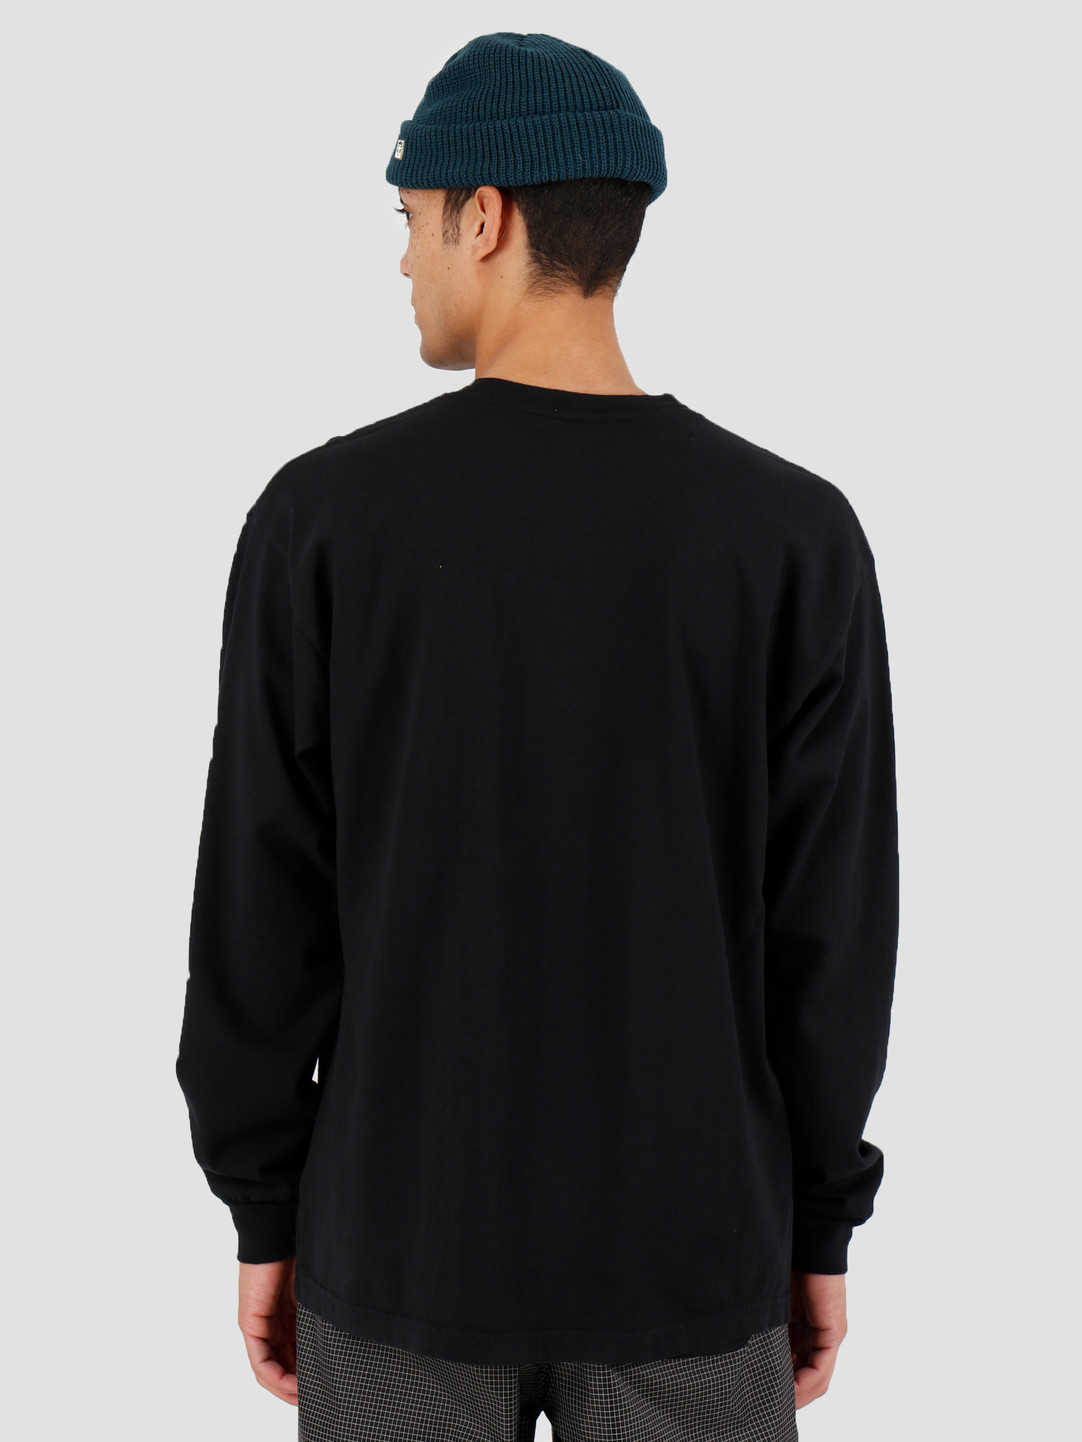 Obey Obey When The Sun Hits Off black 167102139OBK